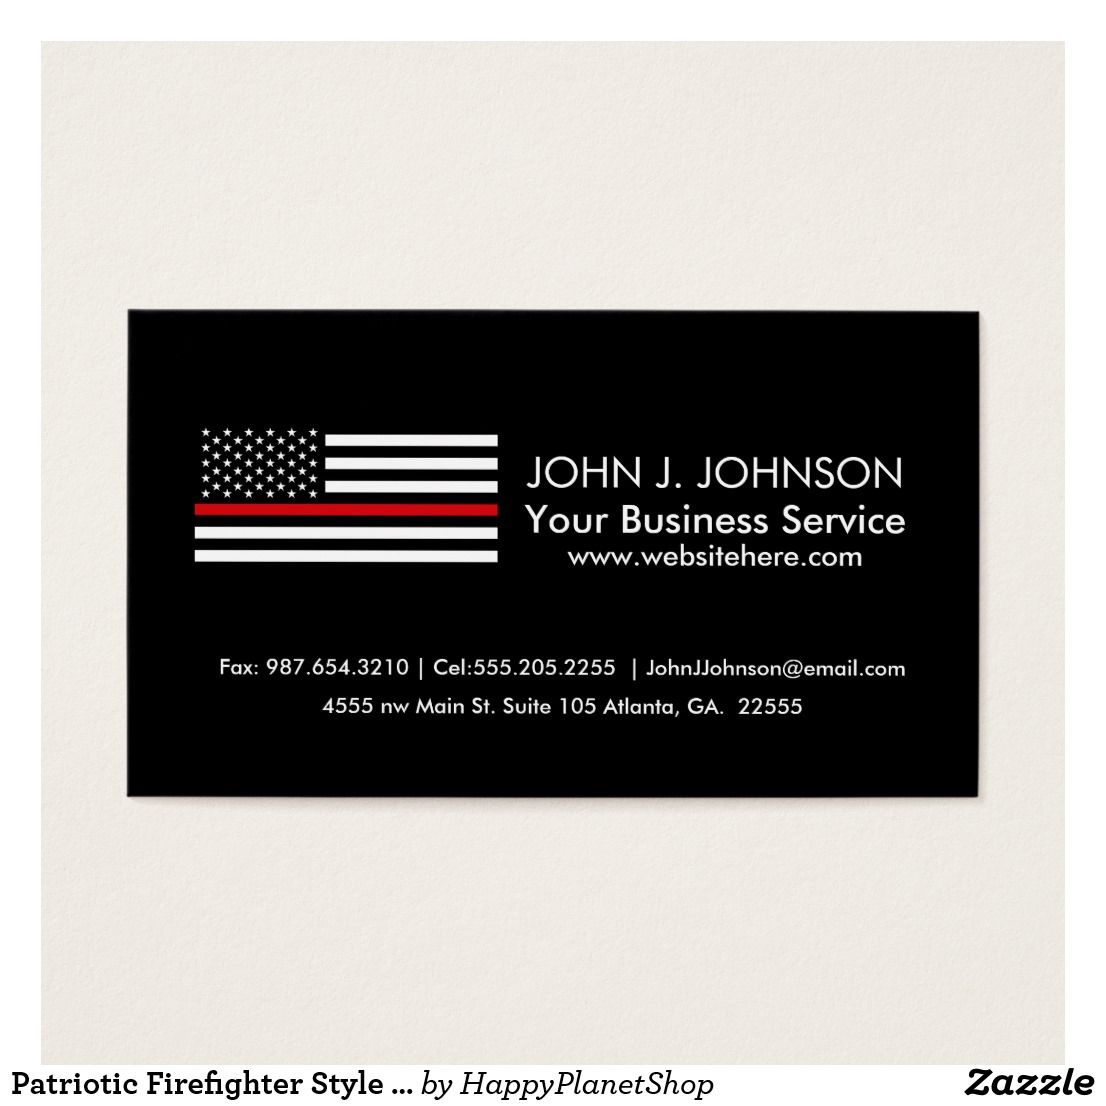 Patriotic Firefighter Style American Flag Business Card | Pinterest ...